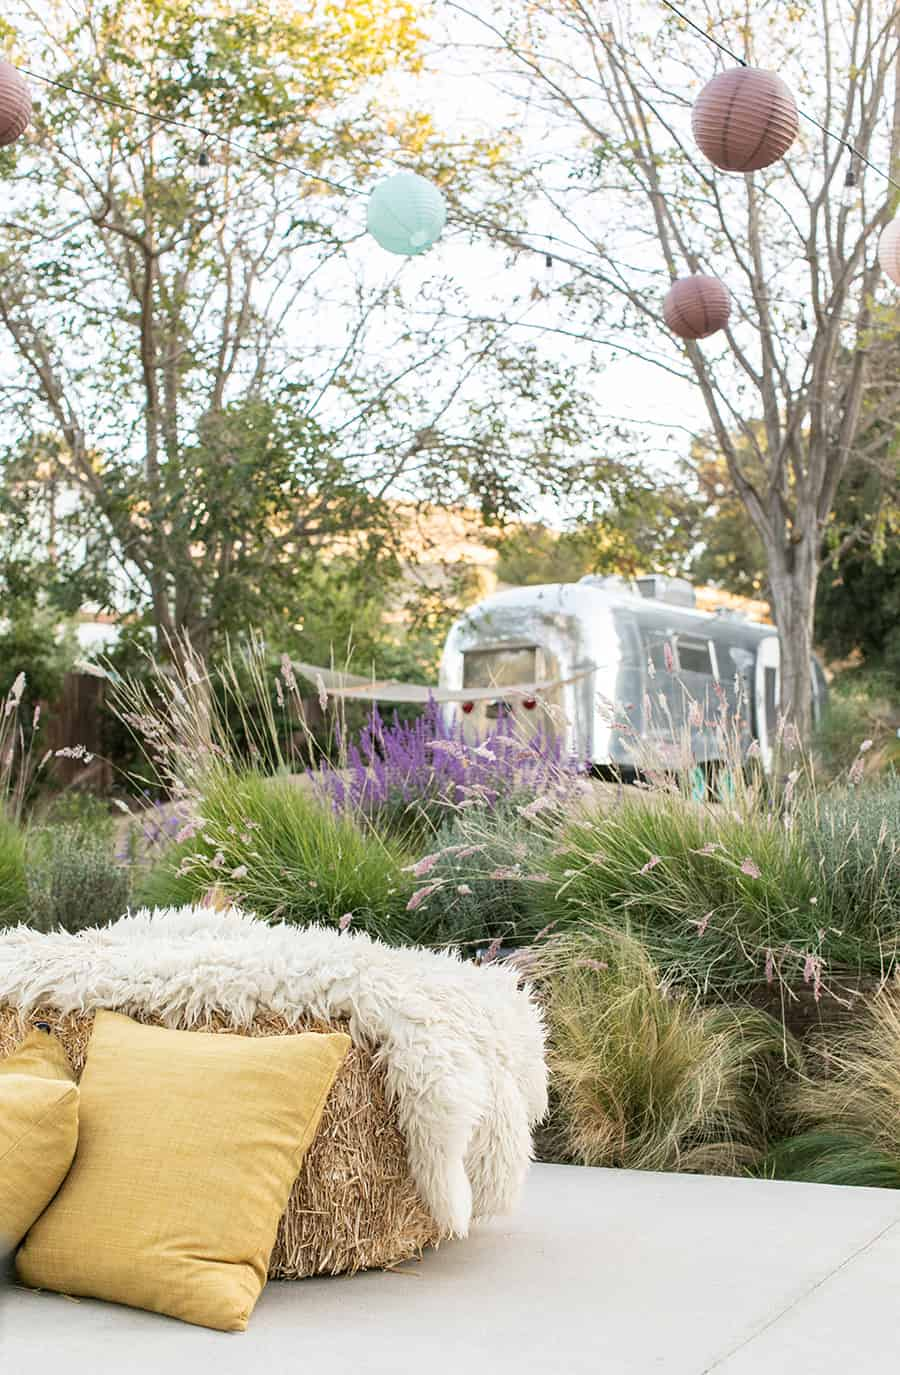 Hay bales with sheepskin, flowers and a vintage airstream.